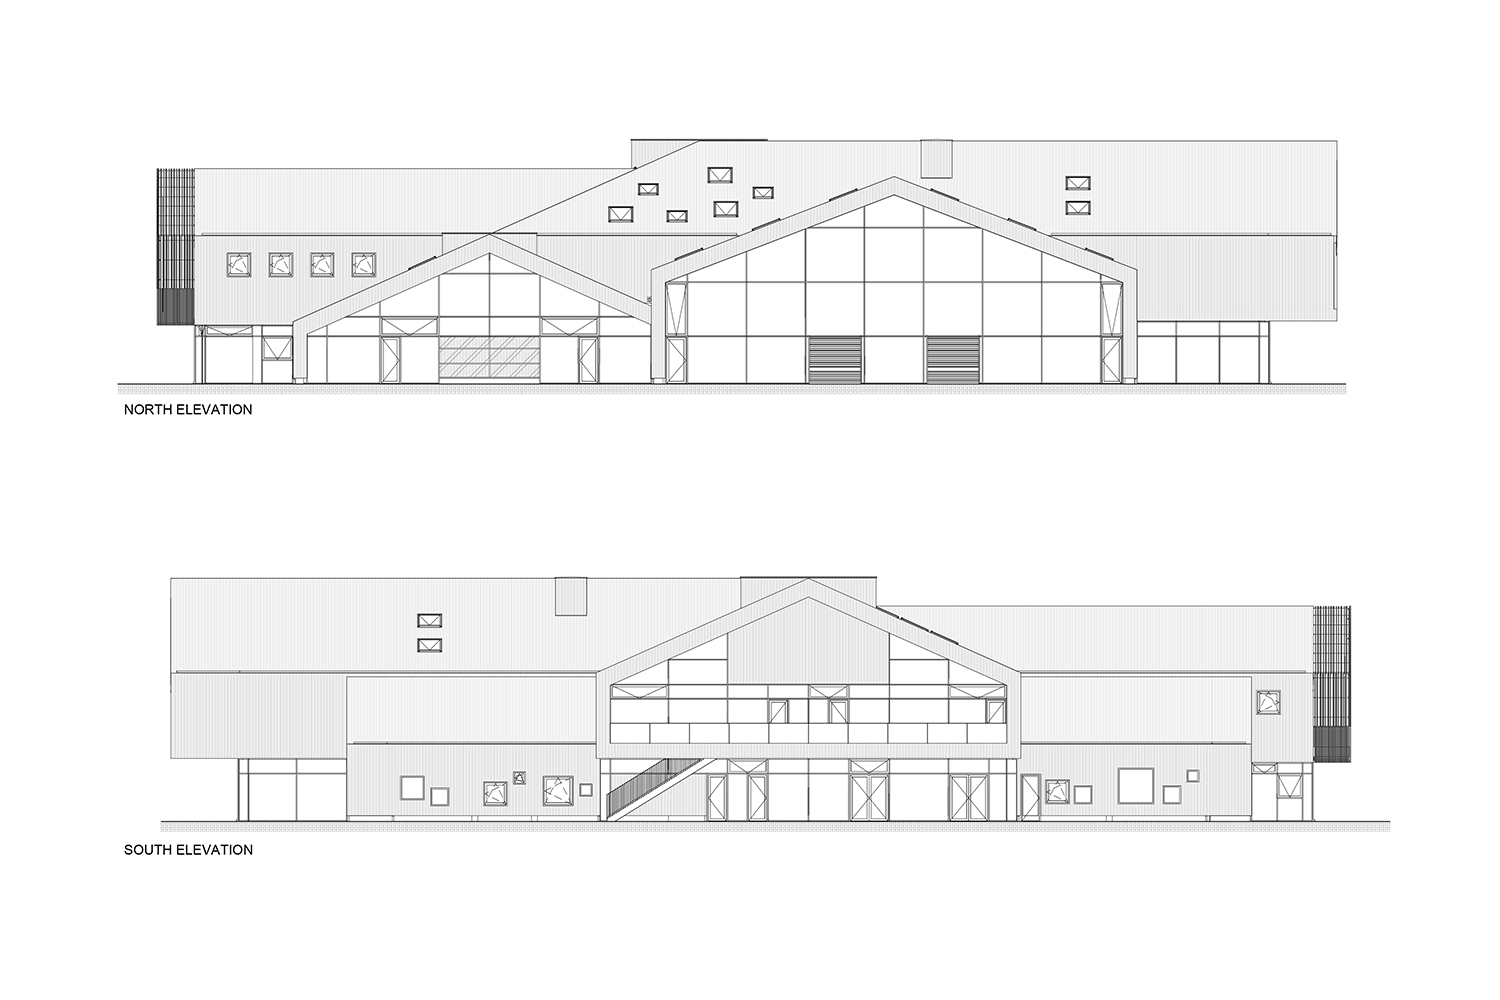 Elevations_North-South C.F. Møller Architects}